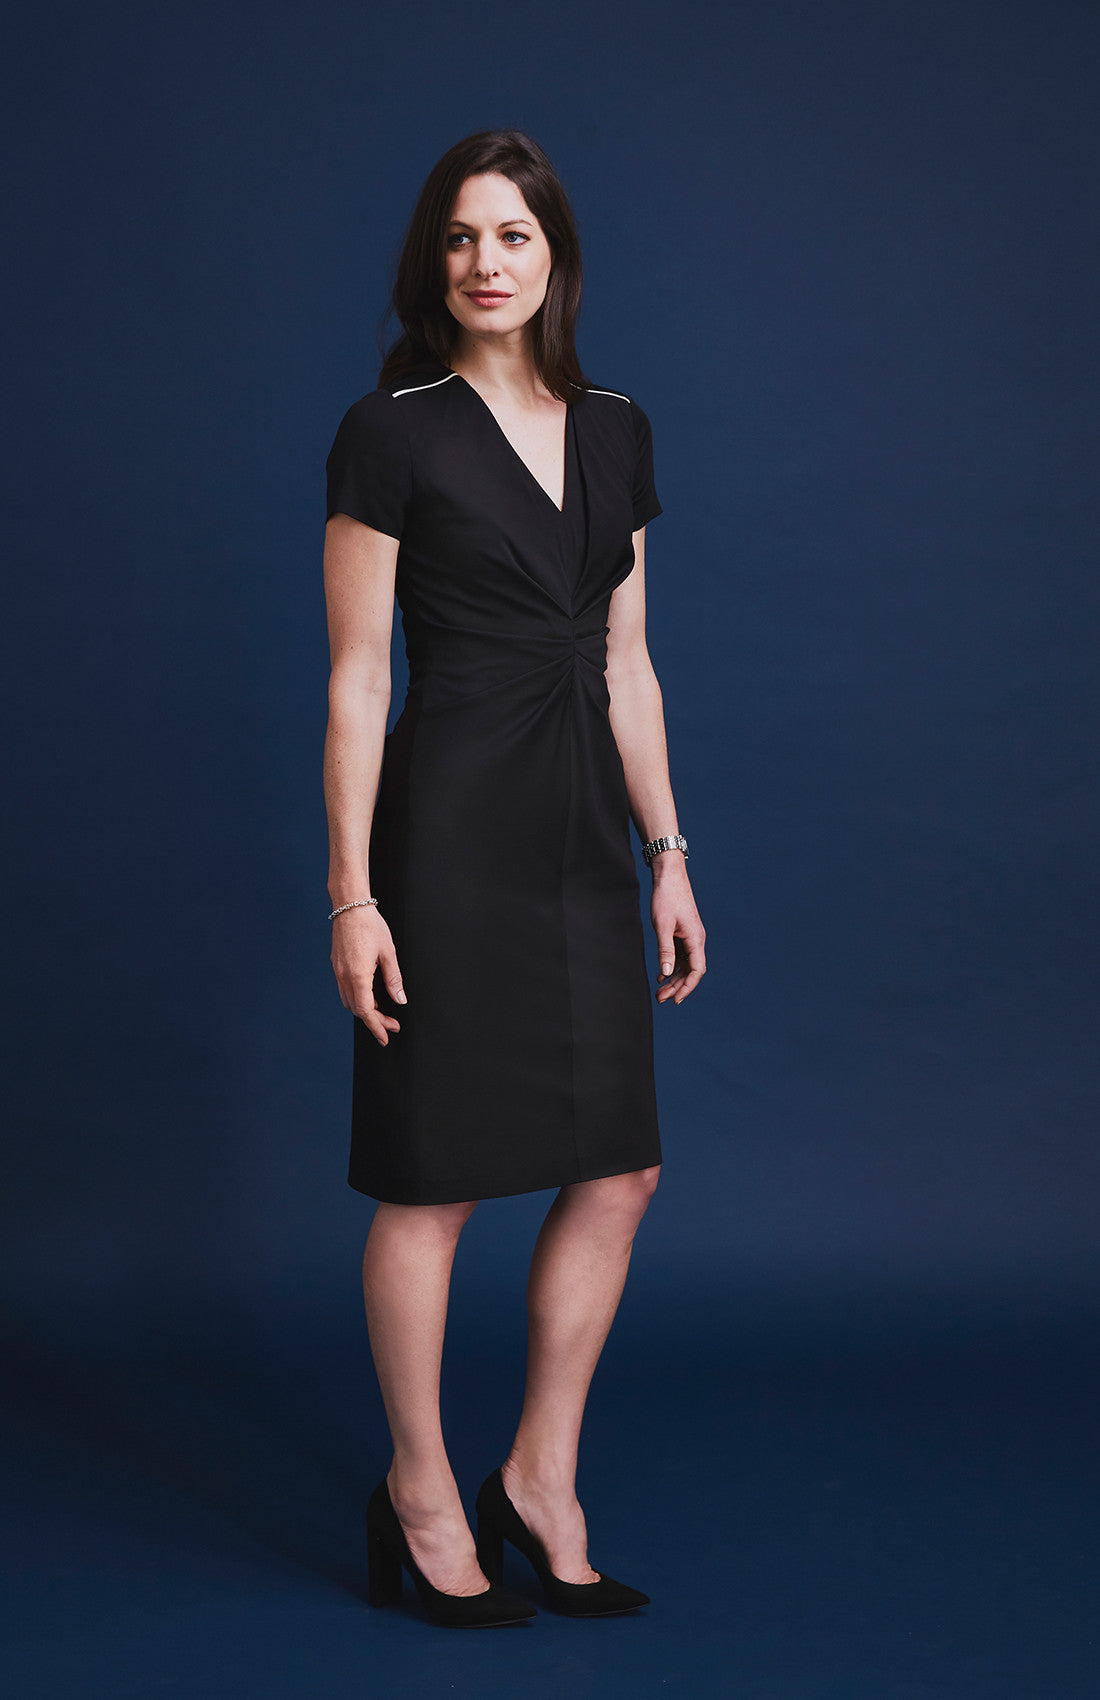 Luxury v-neck ruched and textured short sleeve knee length office dress for work black monochrome